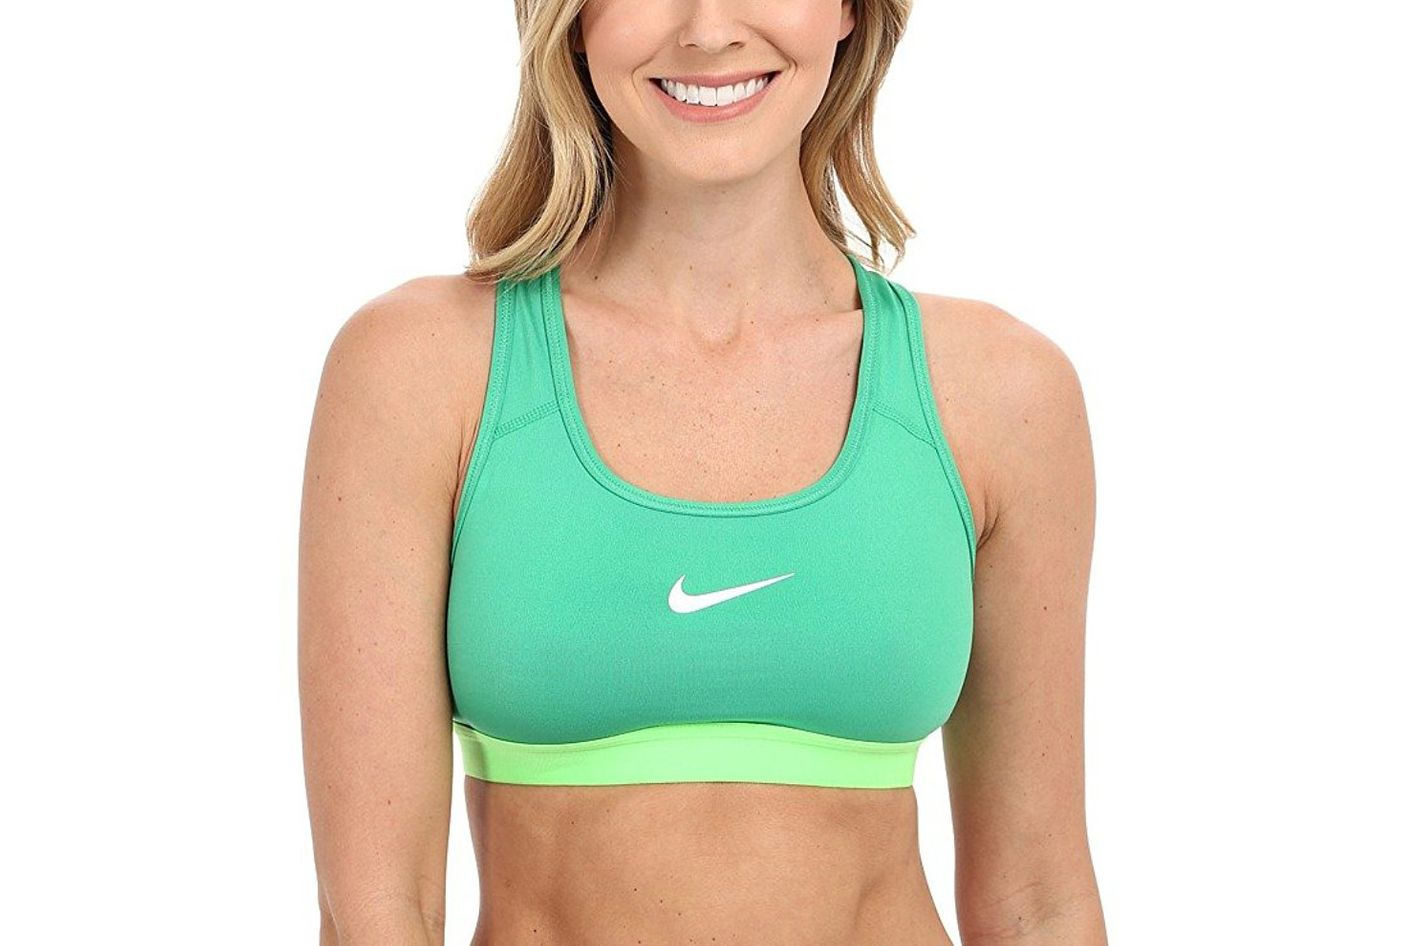 851346044c Nike Women s Pro Classic Sports Bra at Amazon. Buy · NIKE Women s Victory  Compression ...